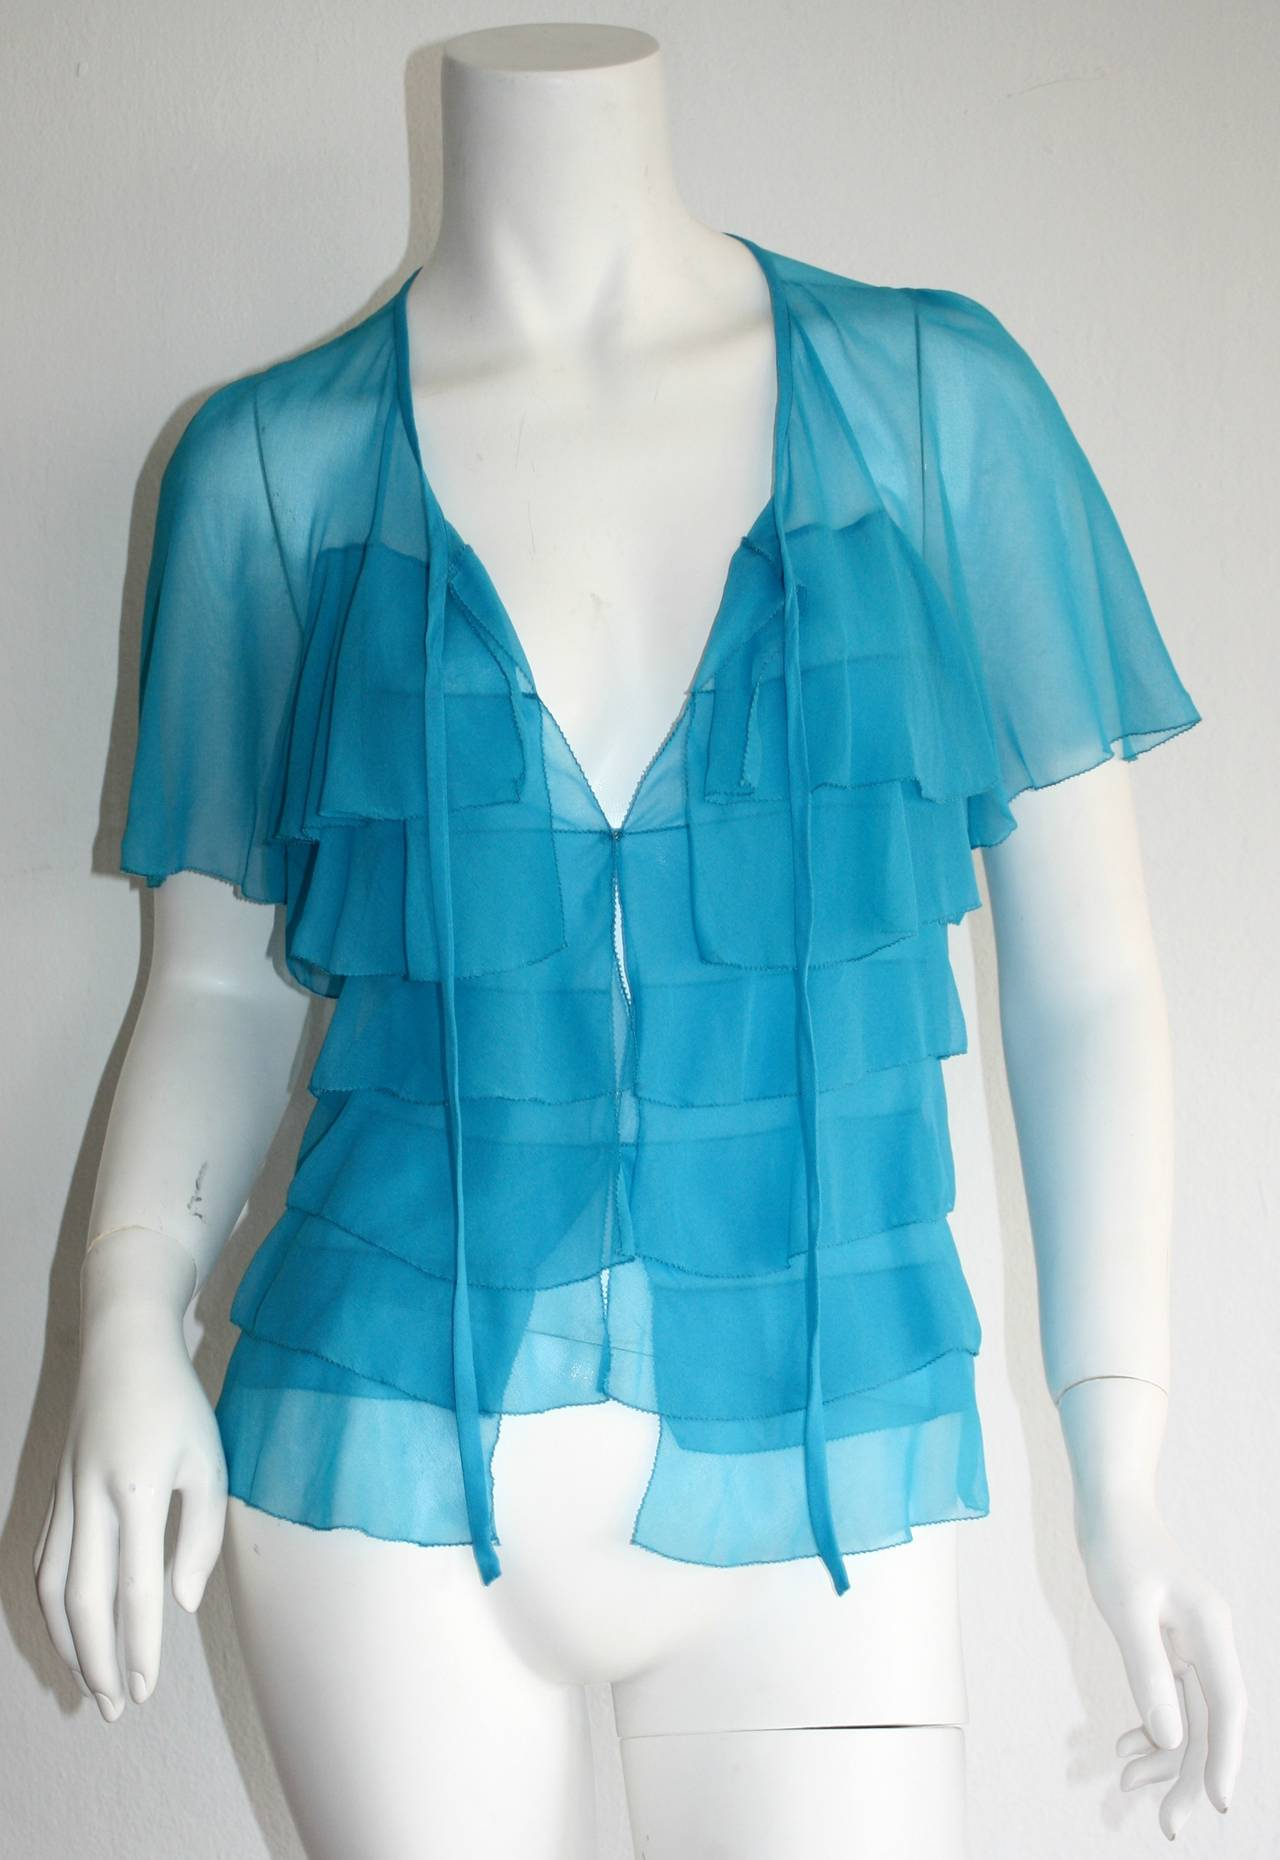 Vintage Holly's Harp Blue Silk Chiffon Tiered Ruffle Bow Blouse 3